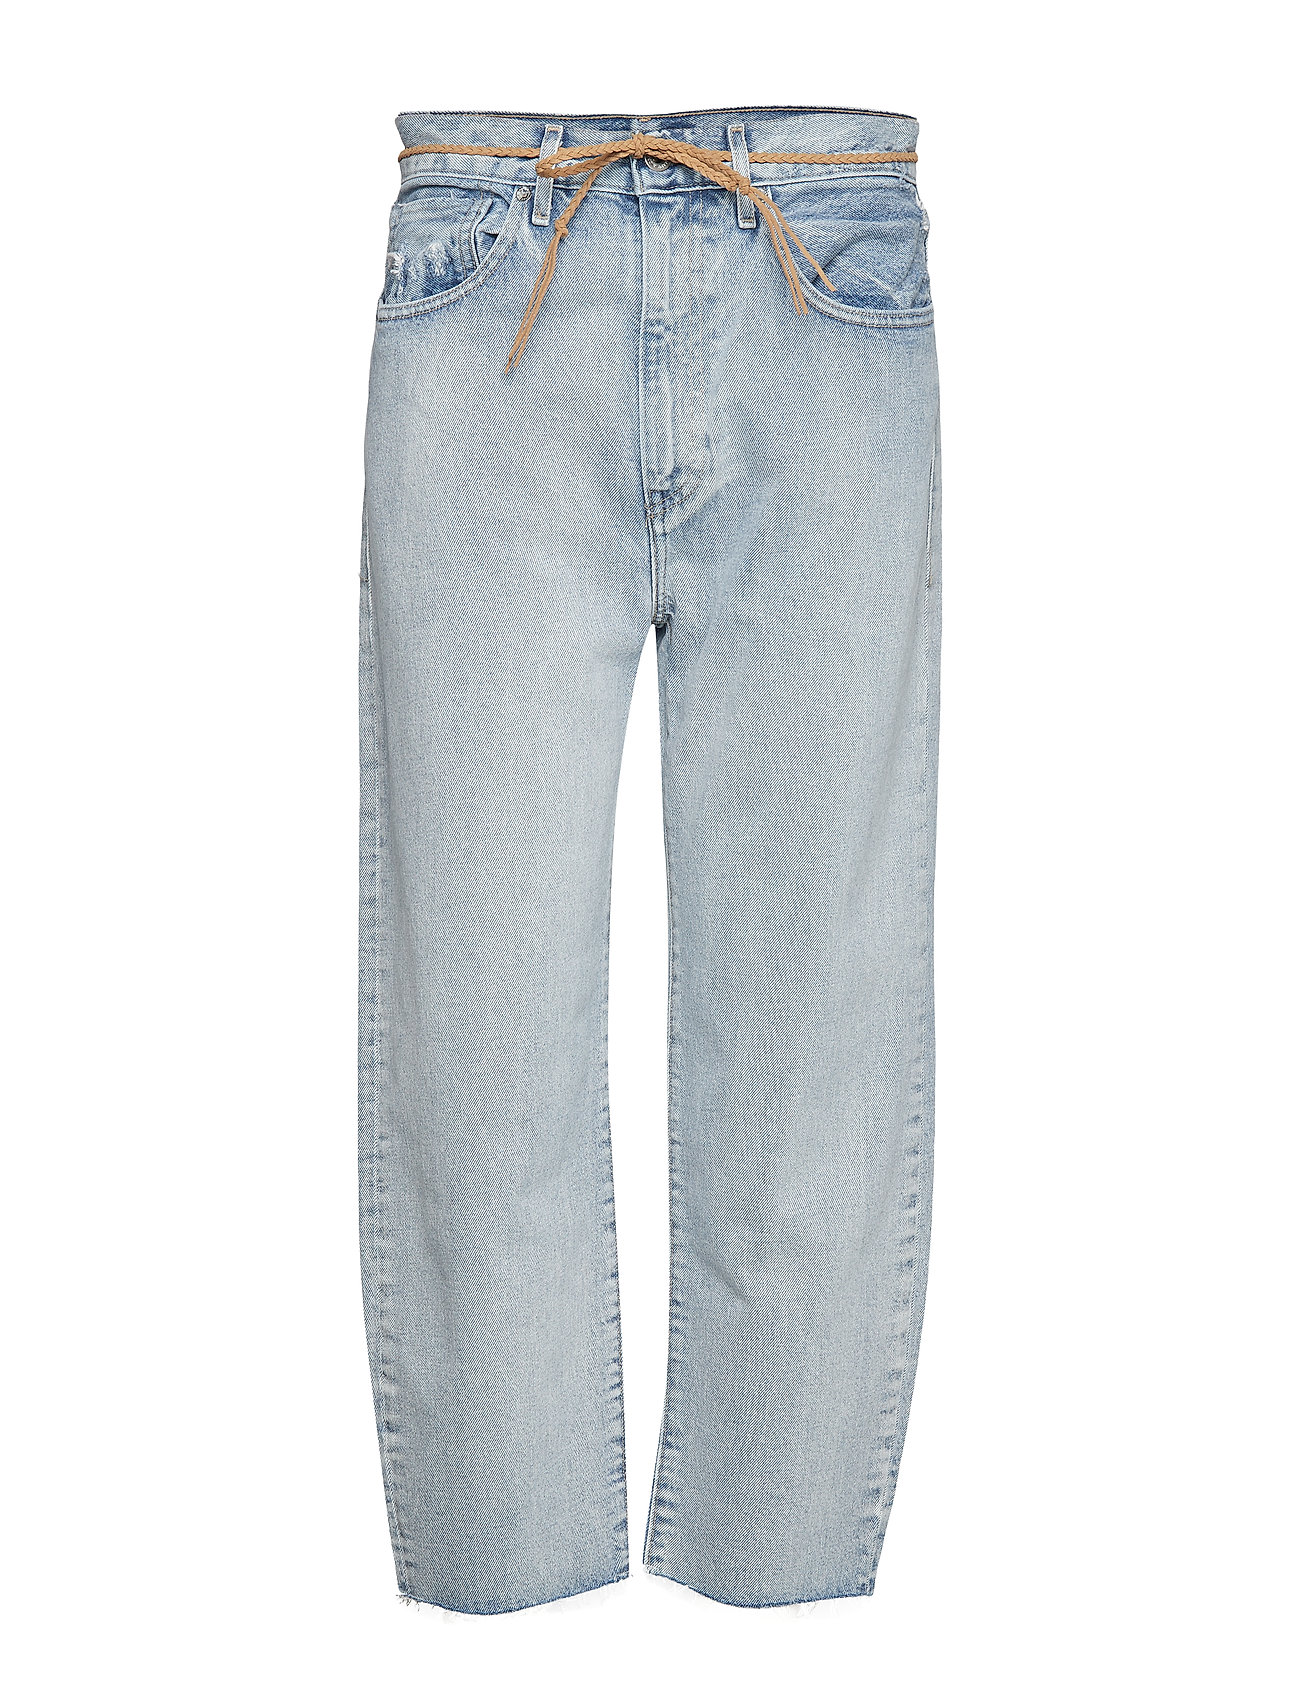 Levi's Made & Crafted LMC BARREL LMC CRISP SKY - LIGHT INDIGO - WORN IN